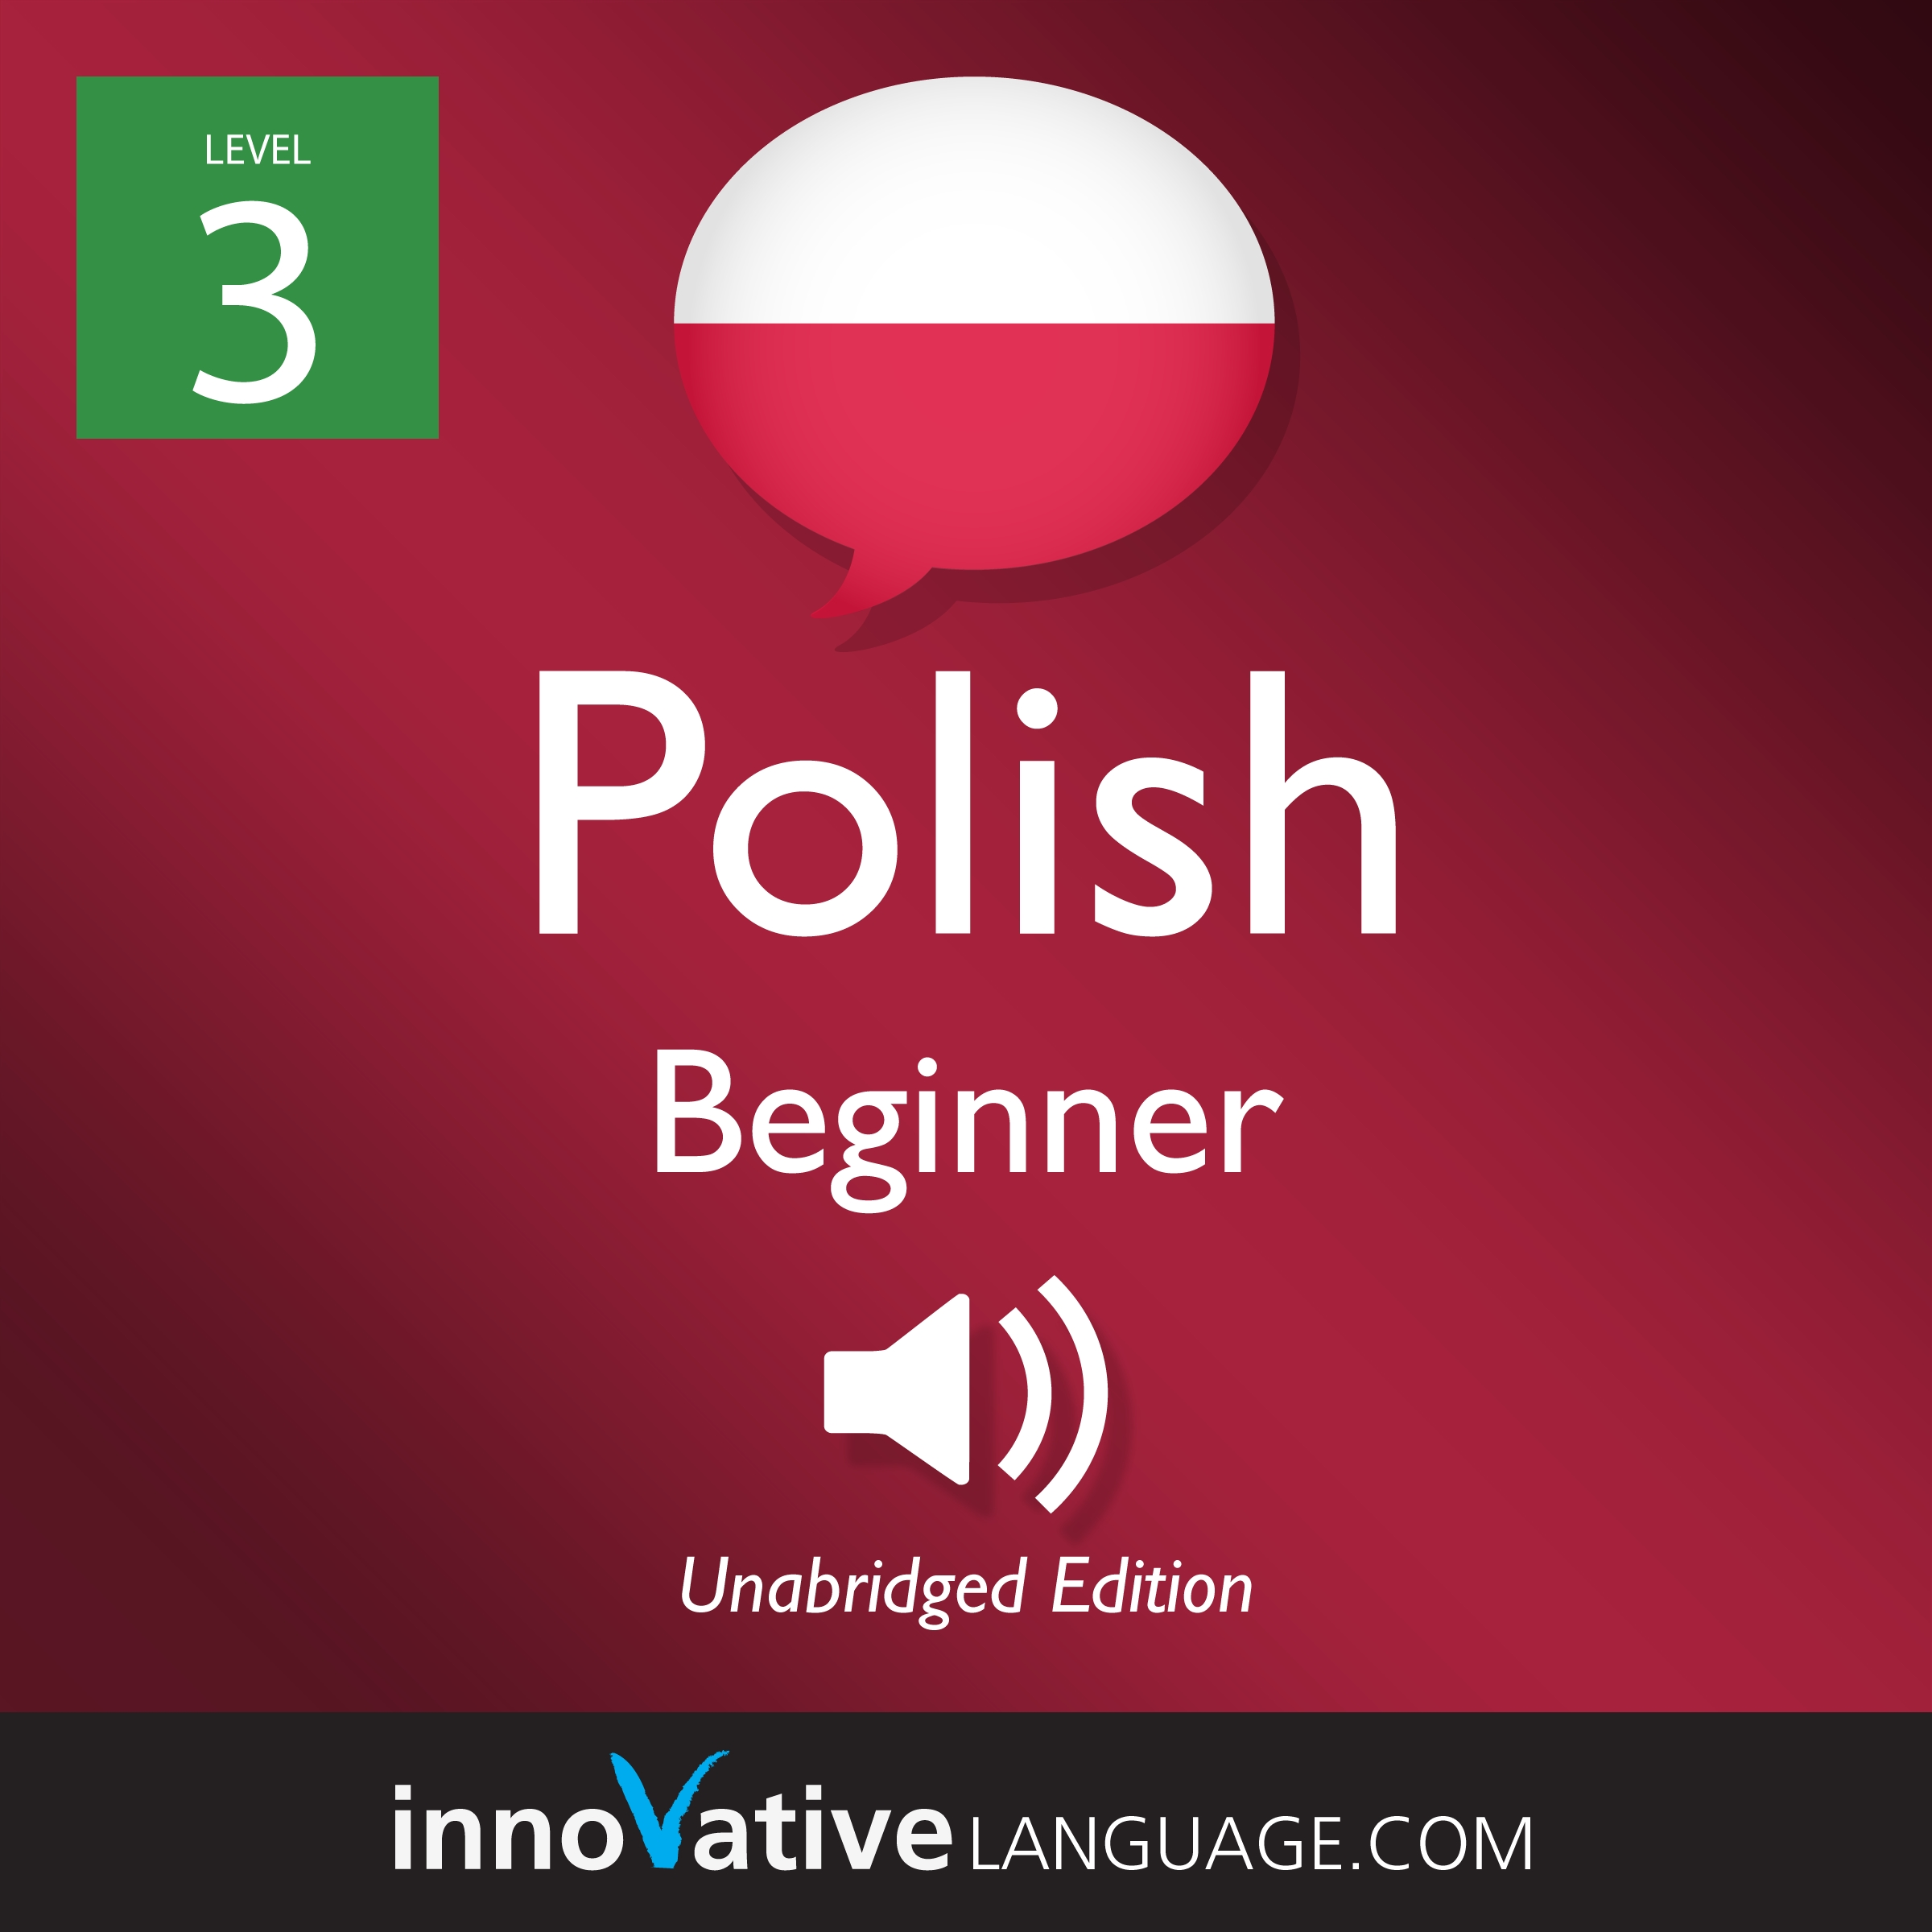 [Audiobook] Learn Polish - Level 3: Beginner Polish, Volume 1